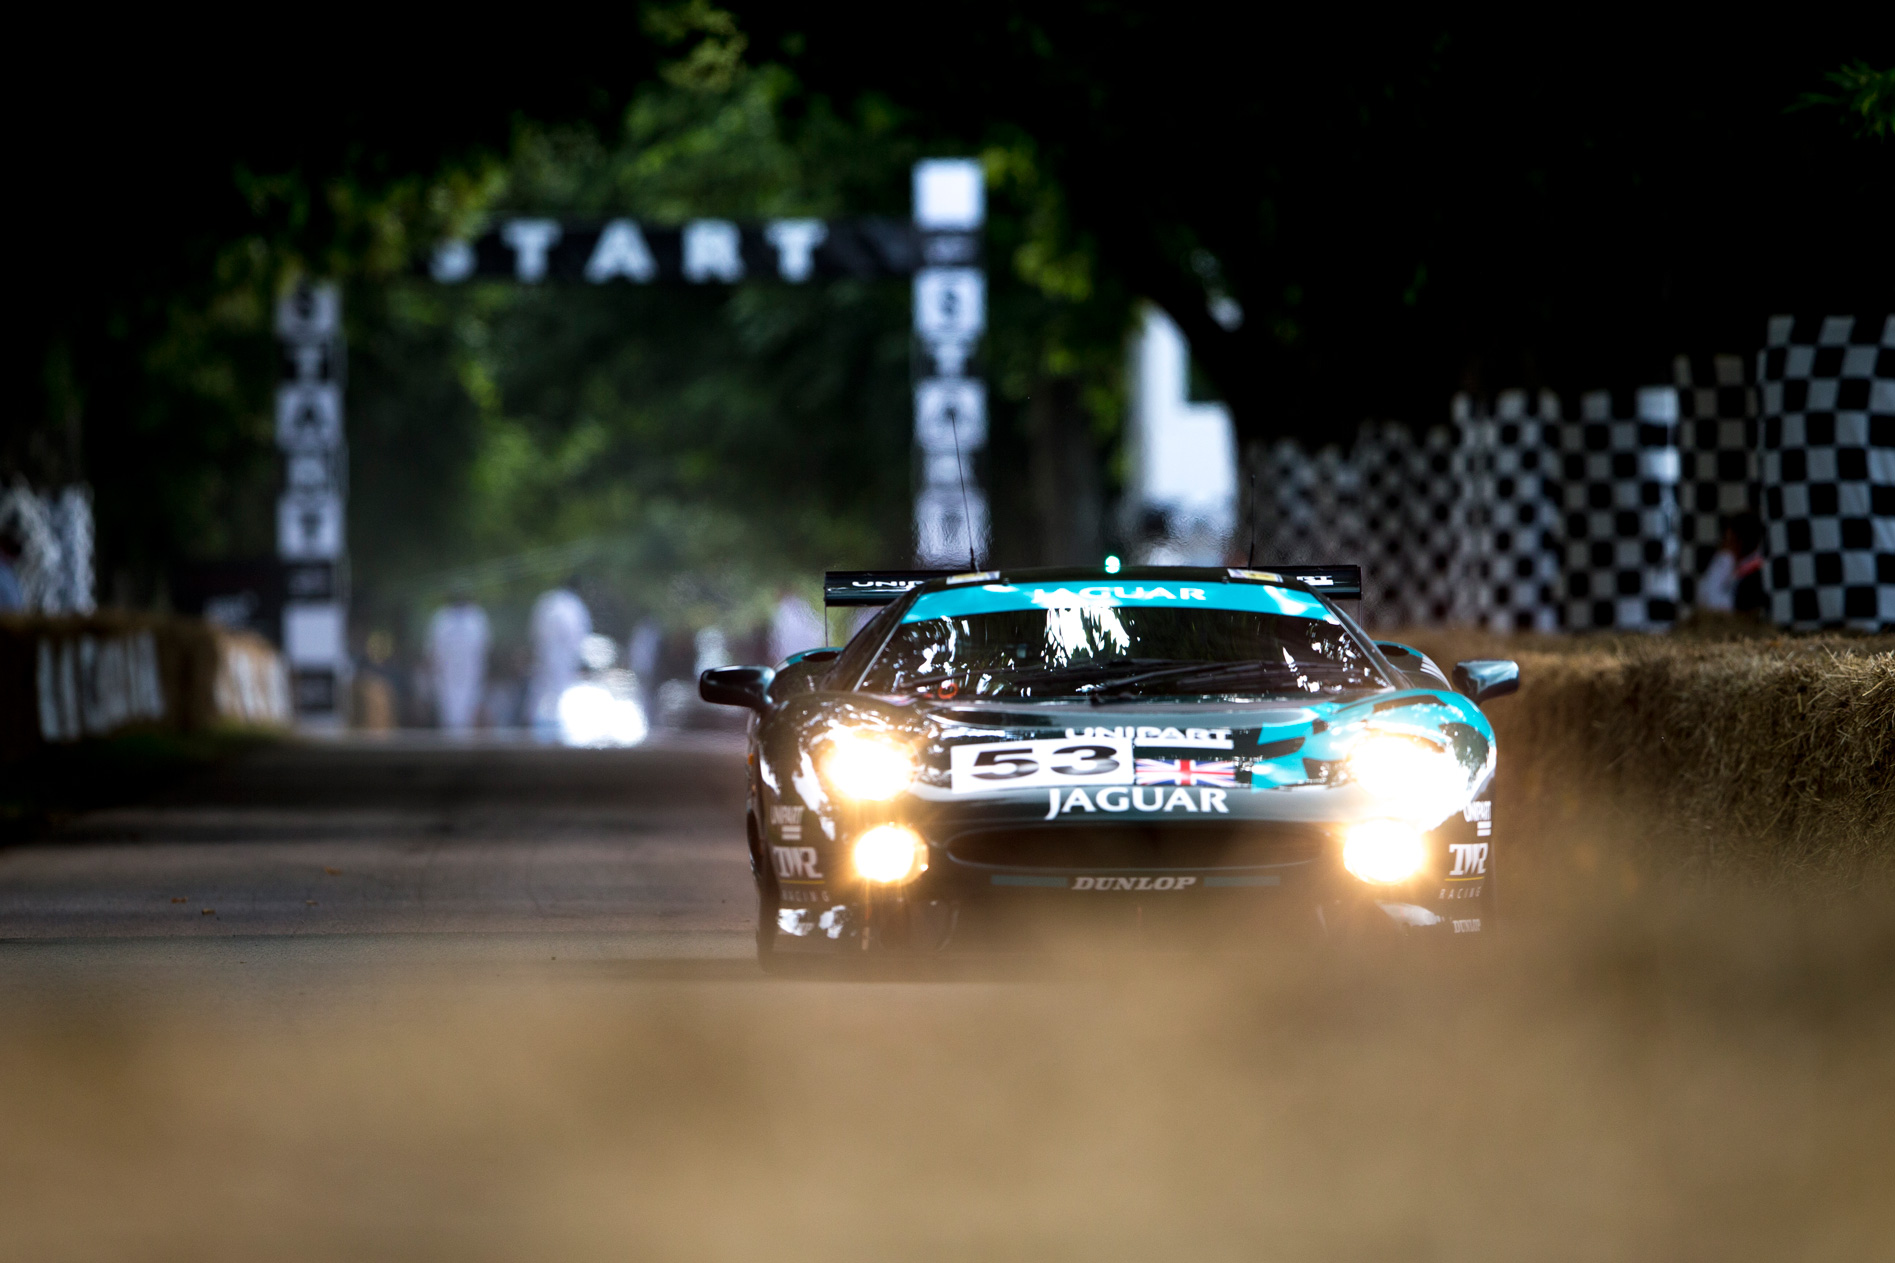 jaguar goodwood hill climb by Nicole Hains